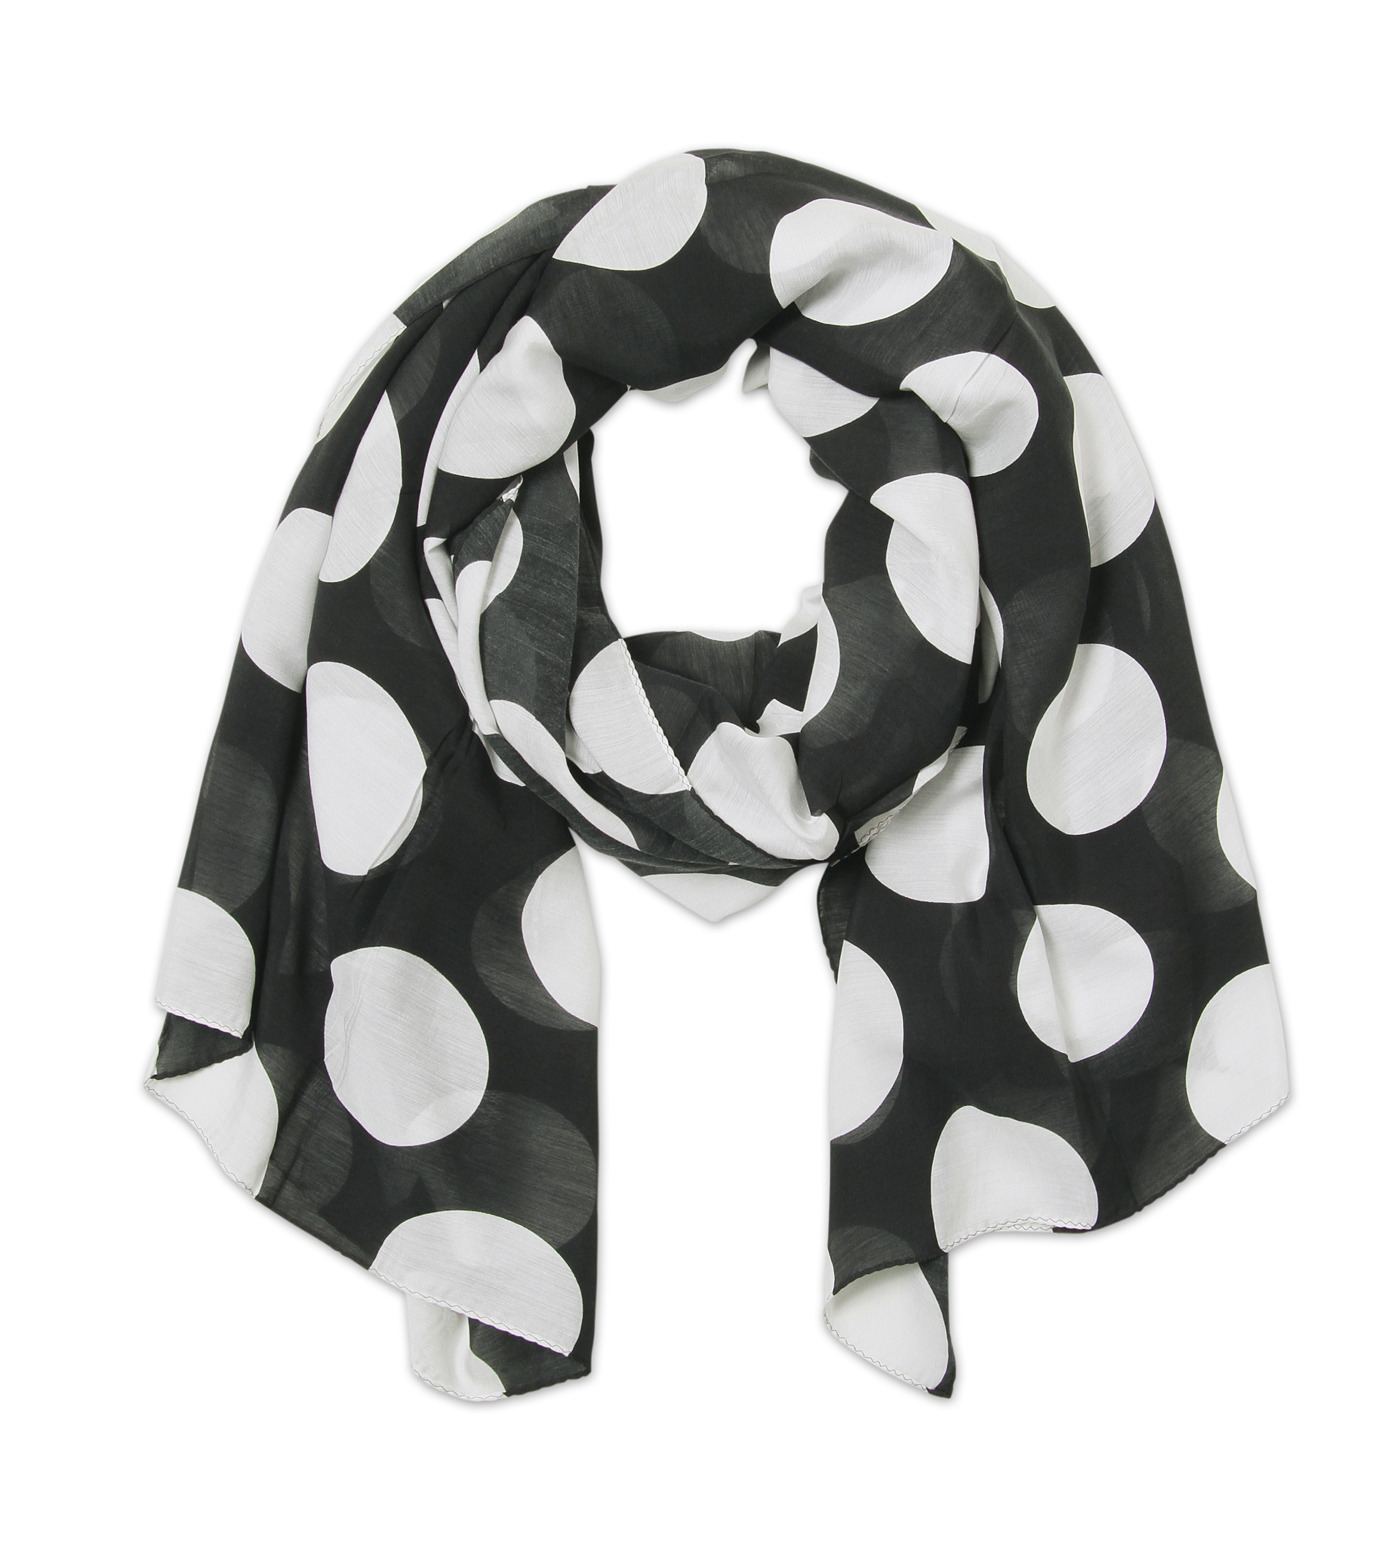 TWO TWO ONE(トゥートゥーワン)のSILK BLEND STOLE SHORT-BLACK(ストール/stole)-16A90007-221-13 拡大詳細画像1